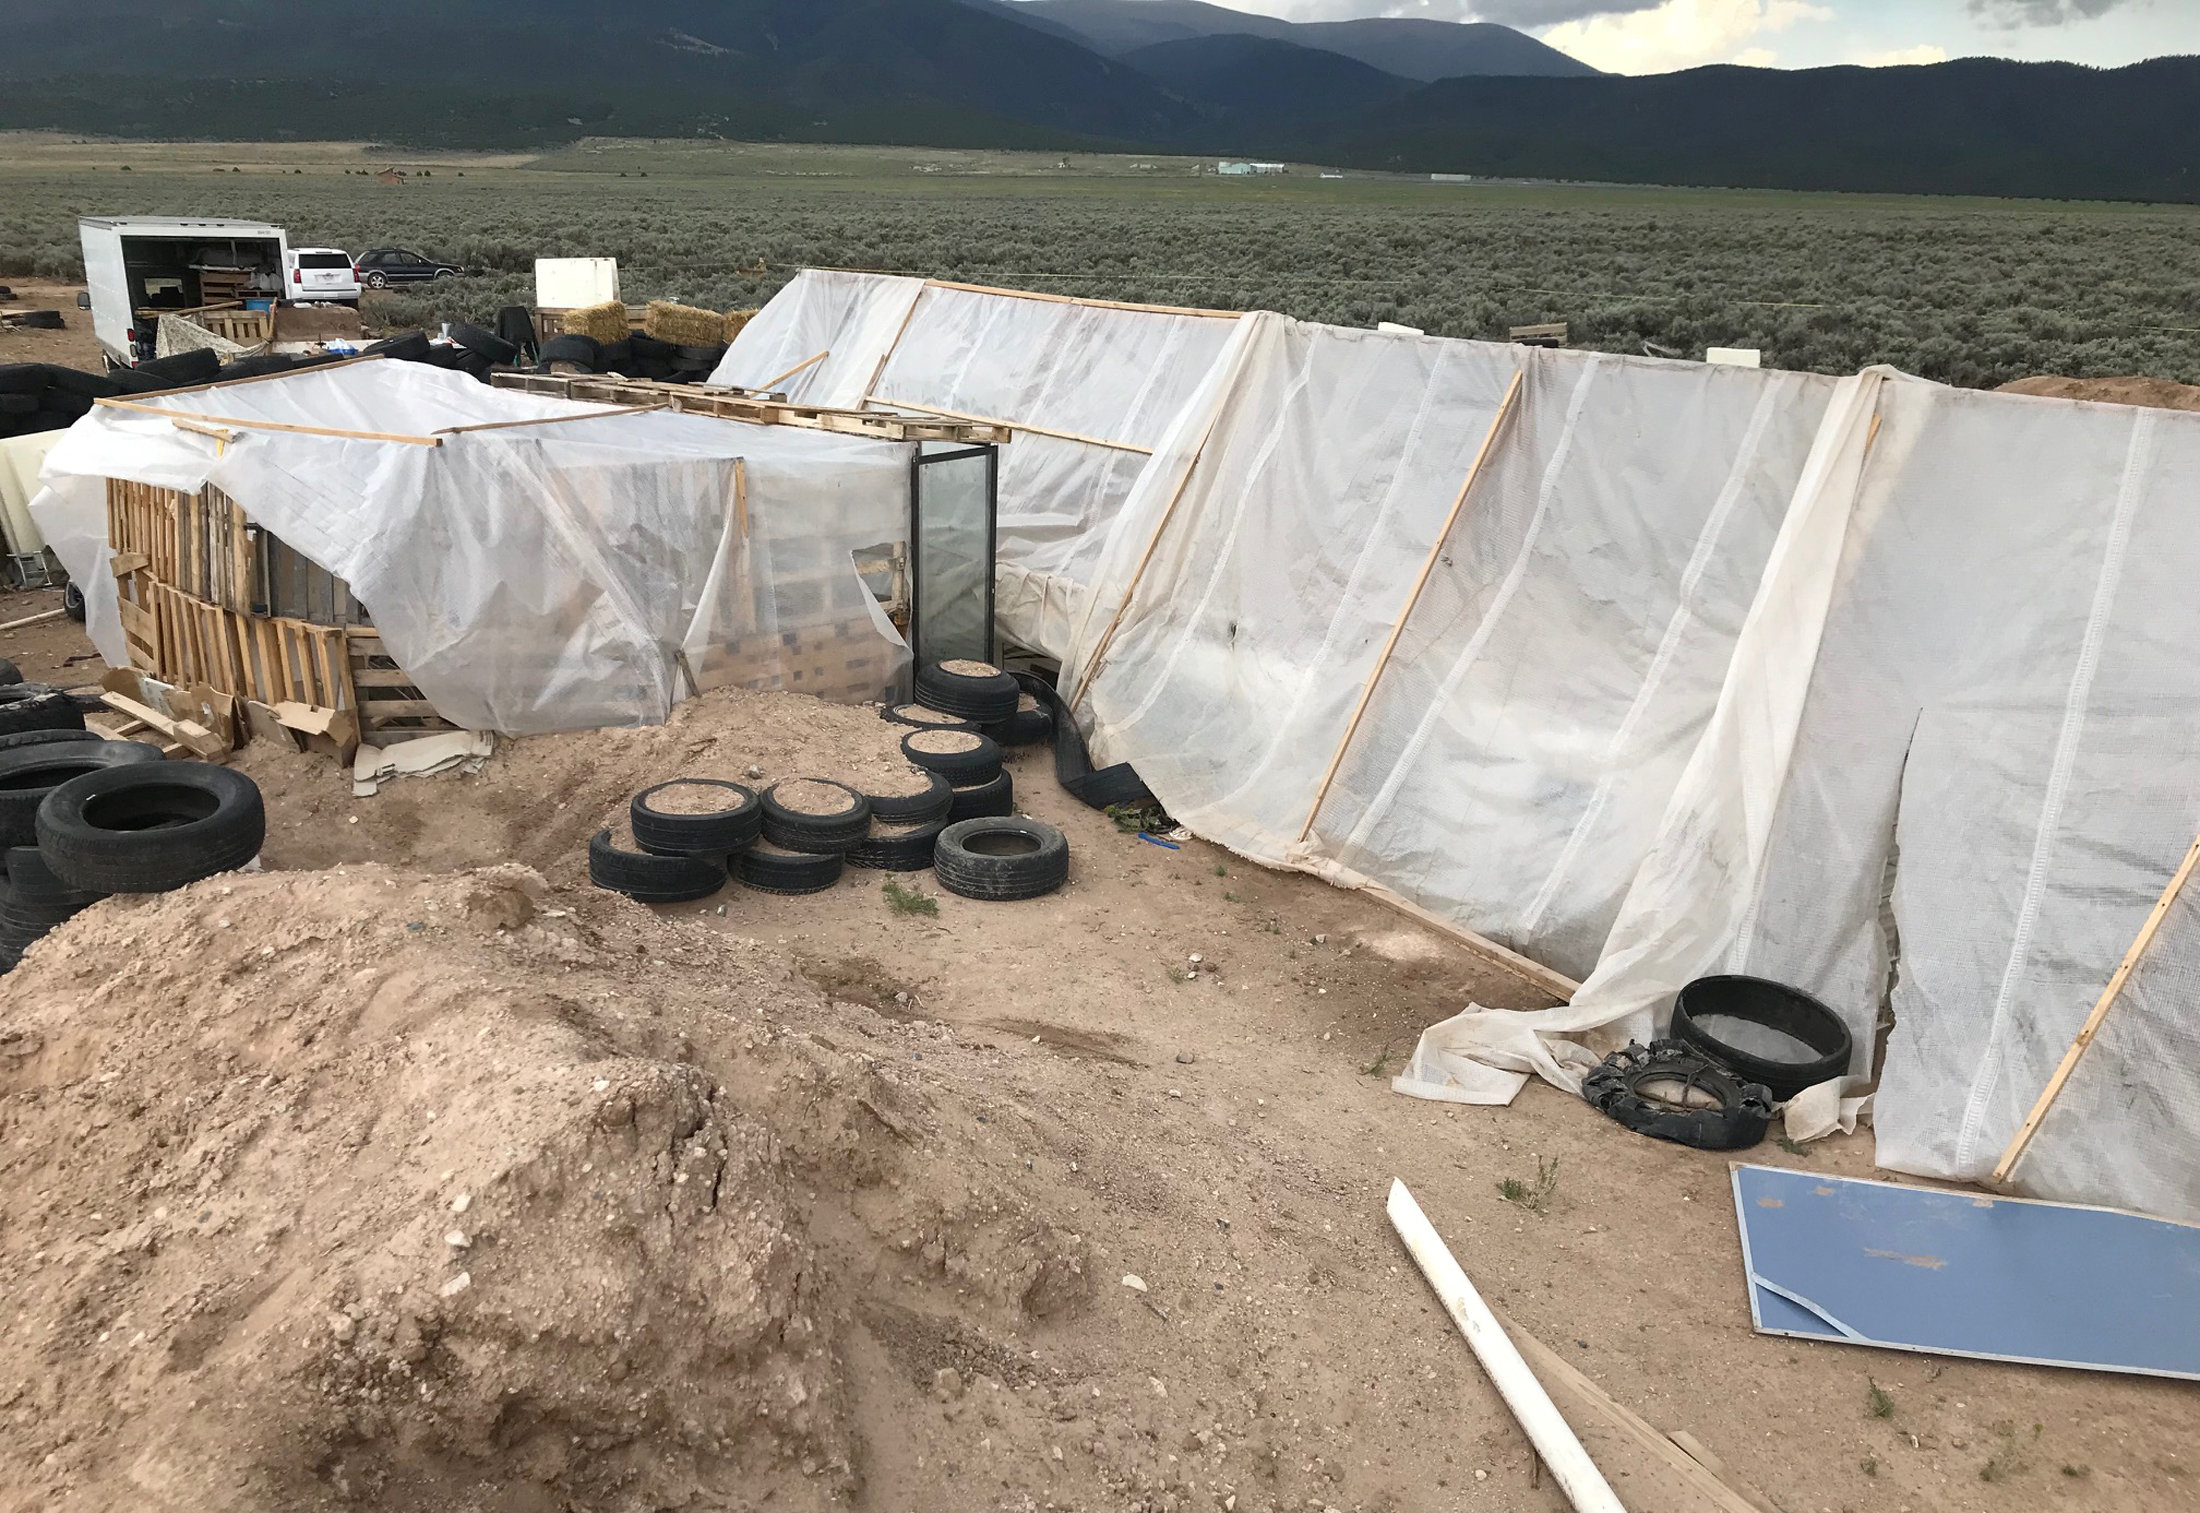 A view of the compound in rural New Mexico where 11 children were taken in protective custody after a raid by authorities near Amalia, New Mexico